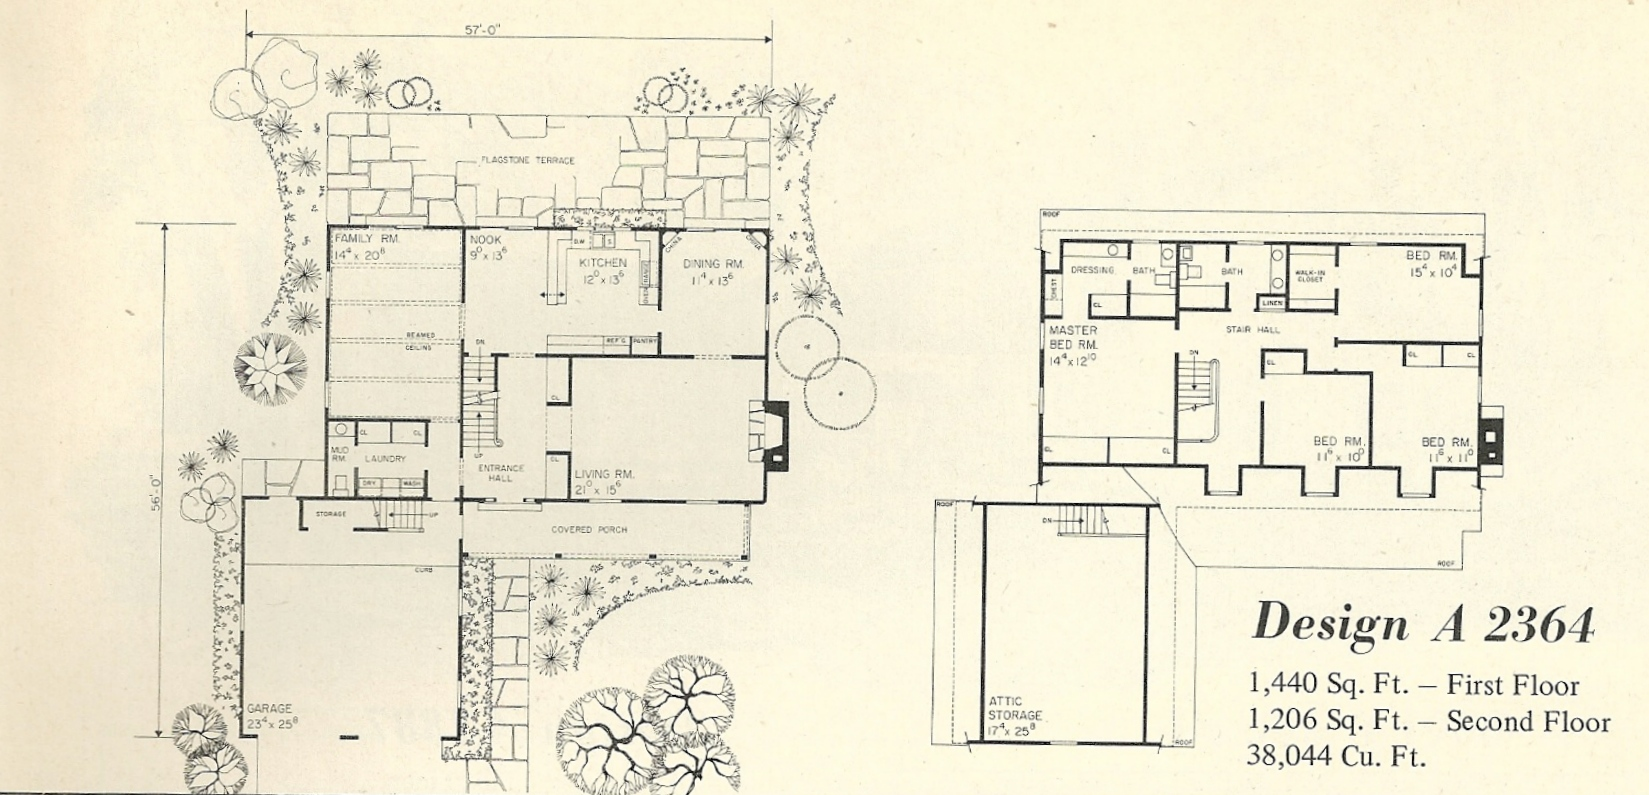 Vintage house plans 2364a antique alter ego for Vintage floor plans